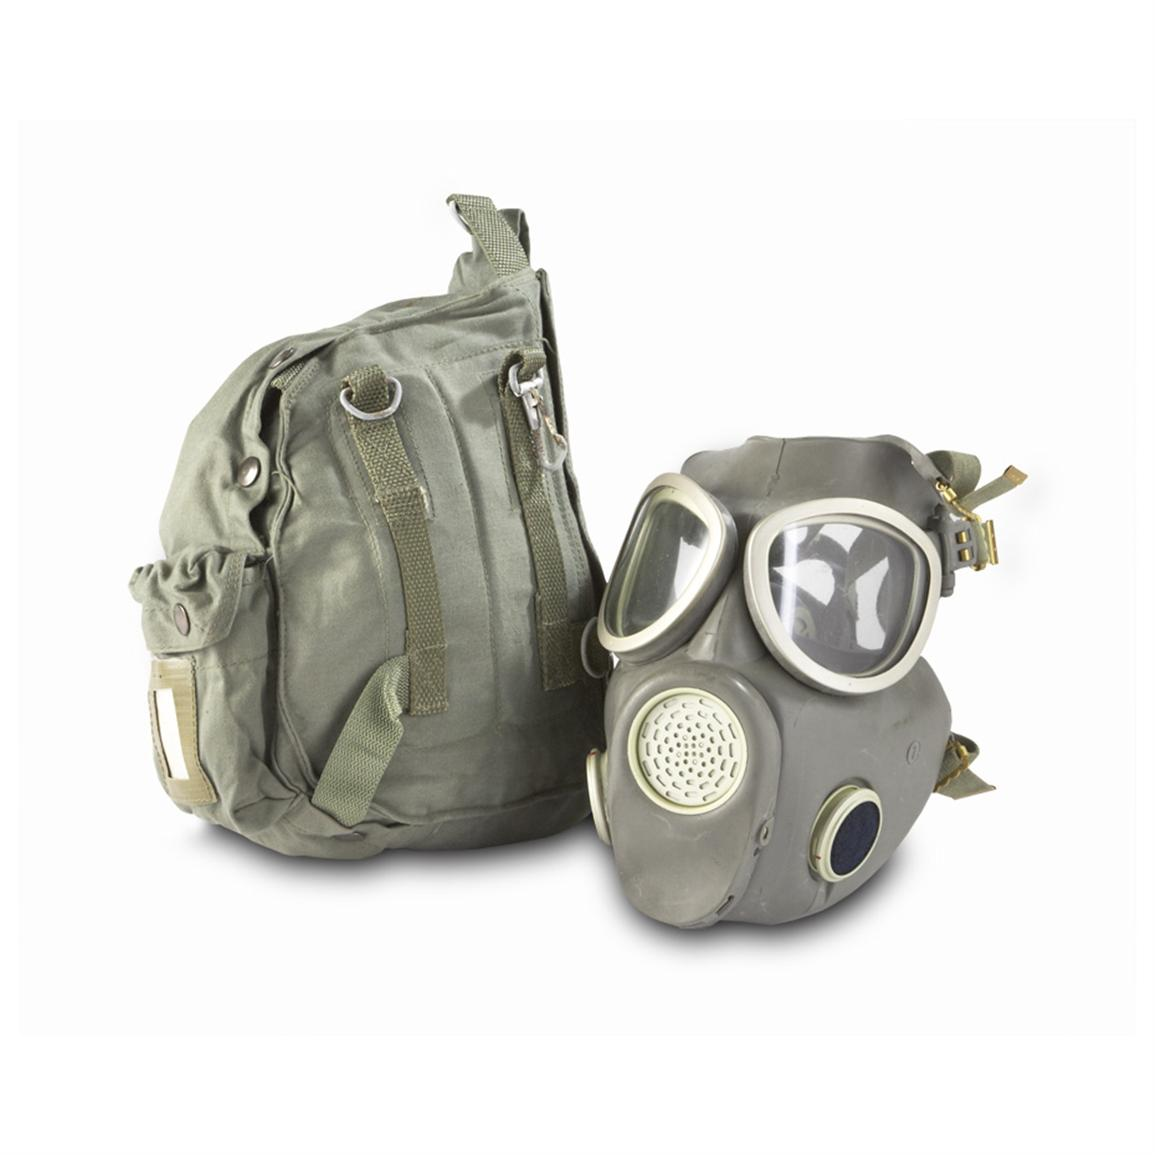 New Polish M10 Military Surplus Gas Mask with Bag • 207-cu. in. capacity